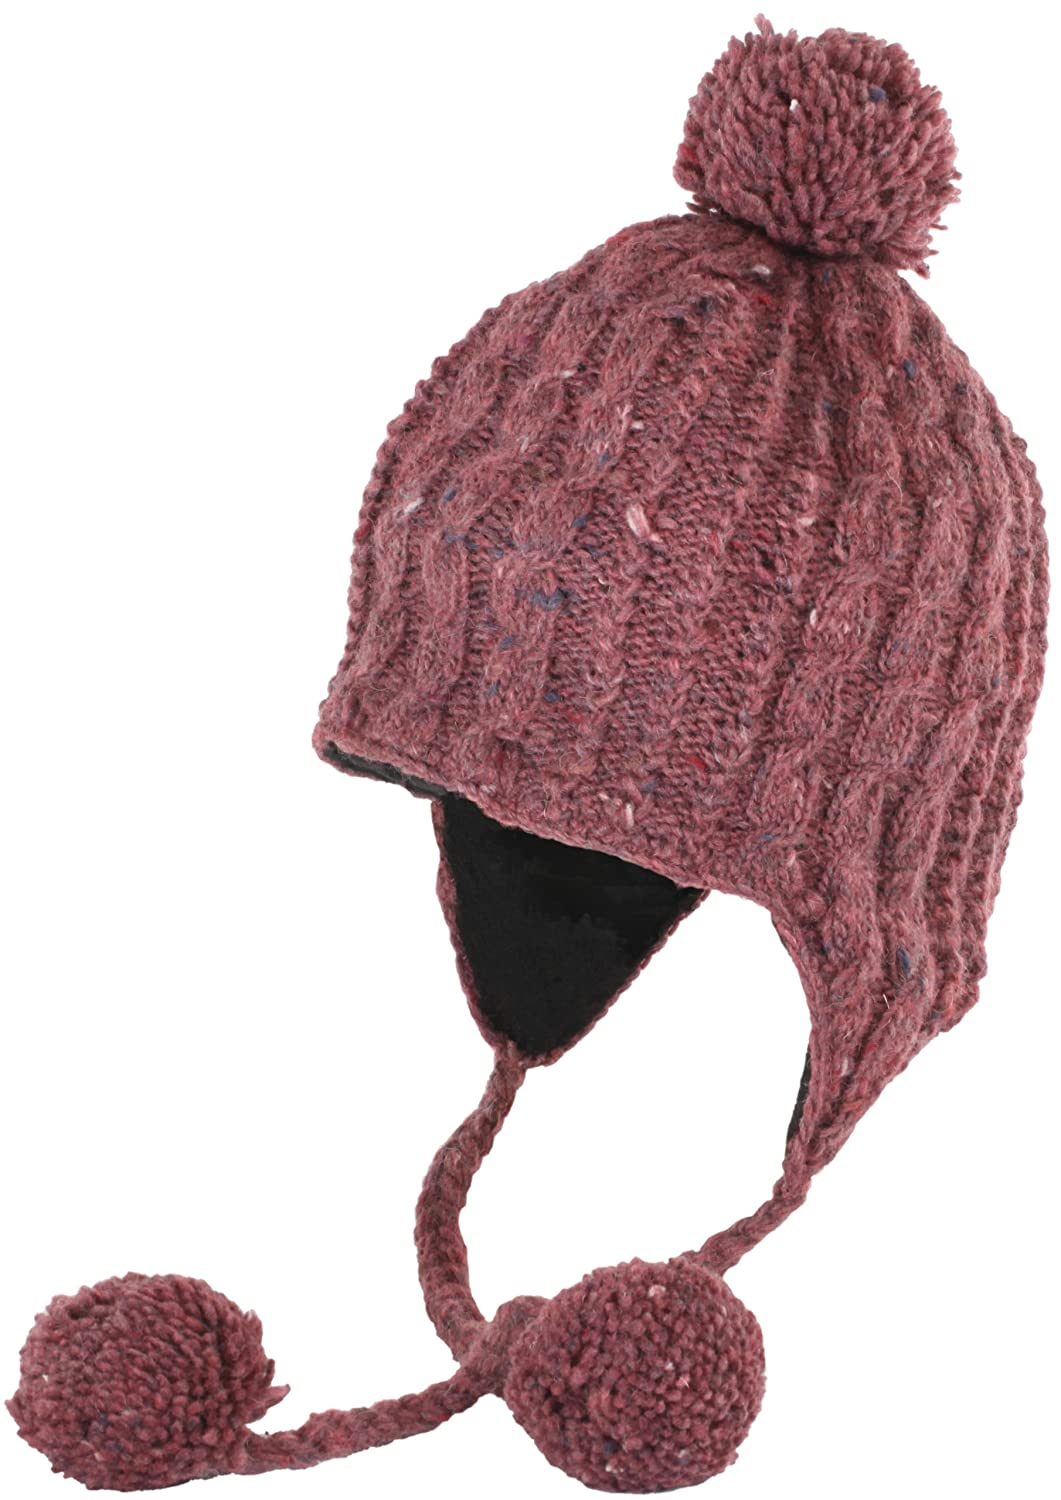 177515a78b64f1 Amazon.com: Nirvanna Designs CH514 Multi Cable Earflap Hat with Fleece,  Plum: Sports & Outdoors